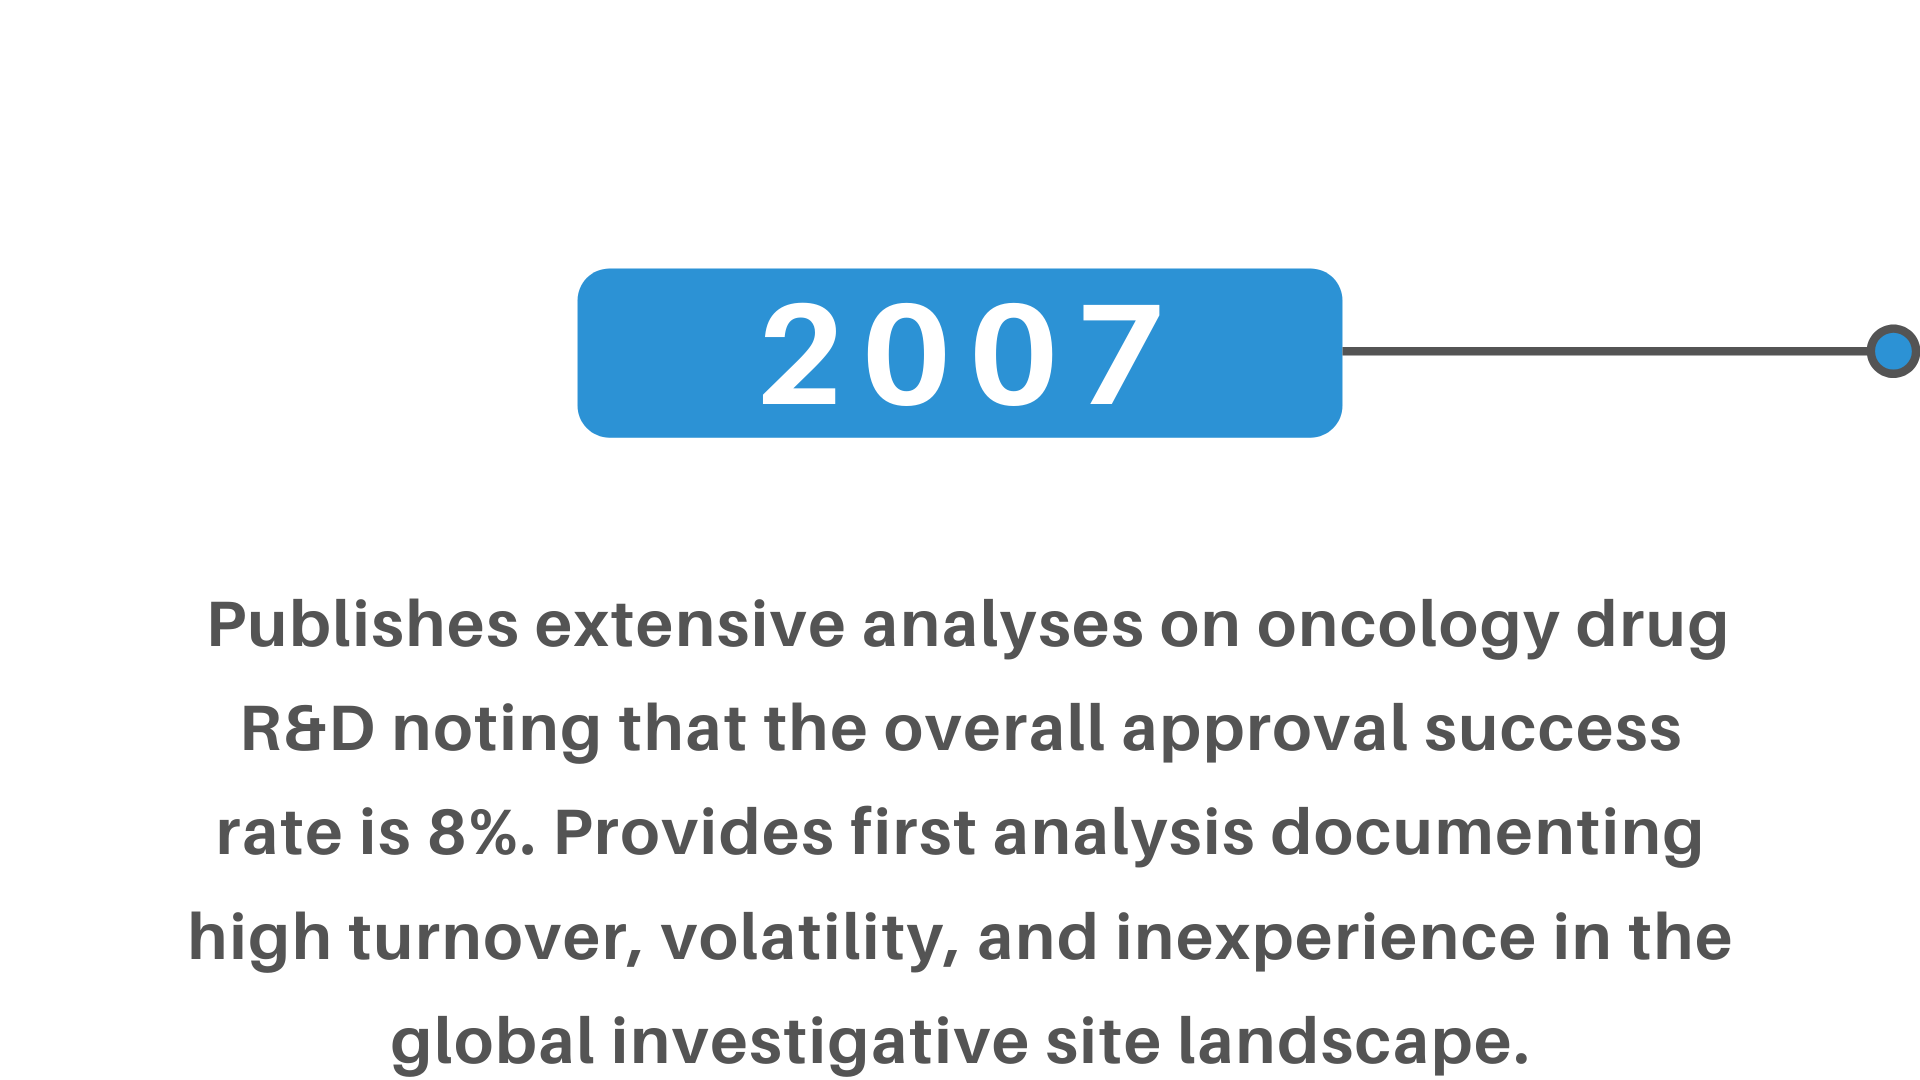 oncology drug R&D approval success rate 8%